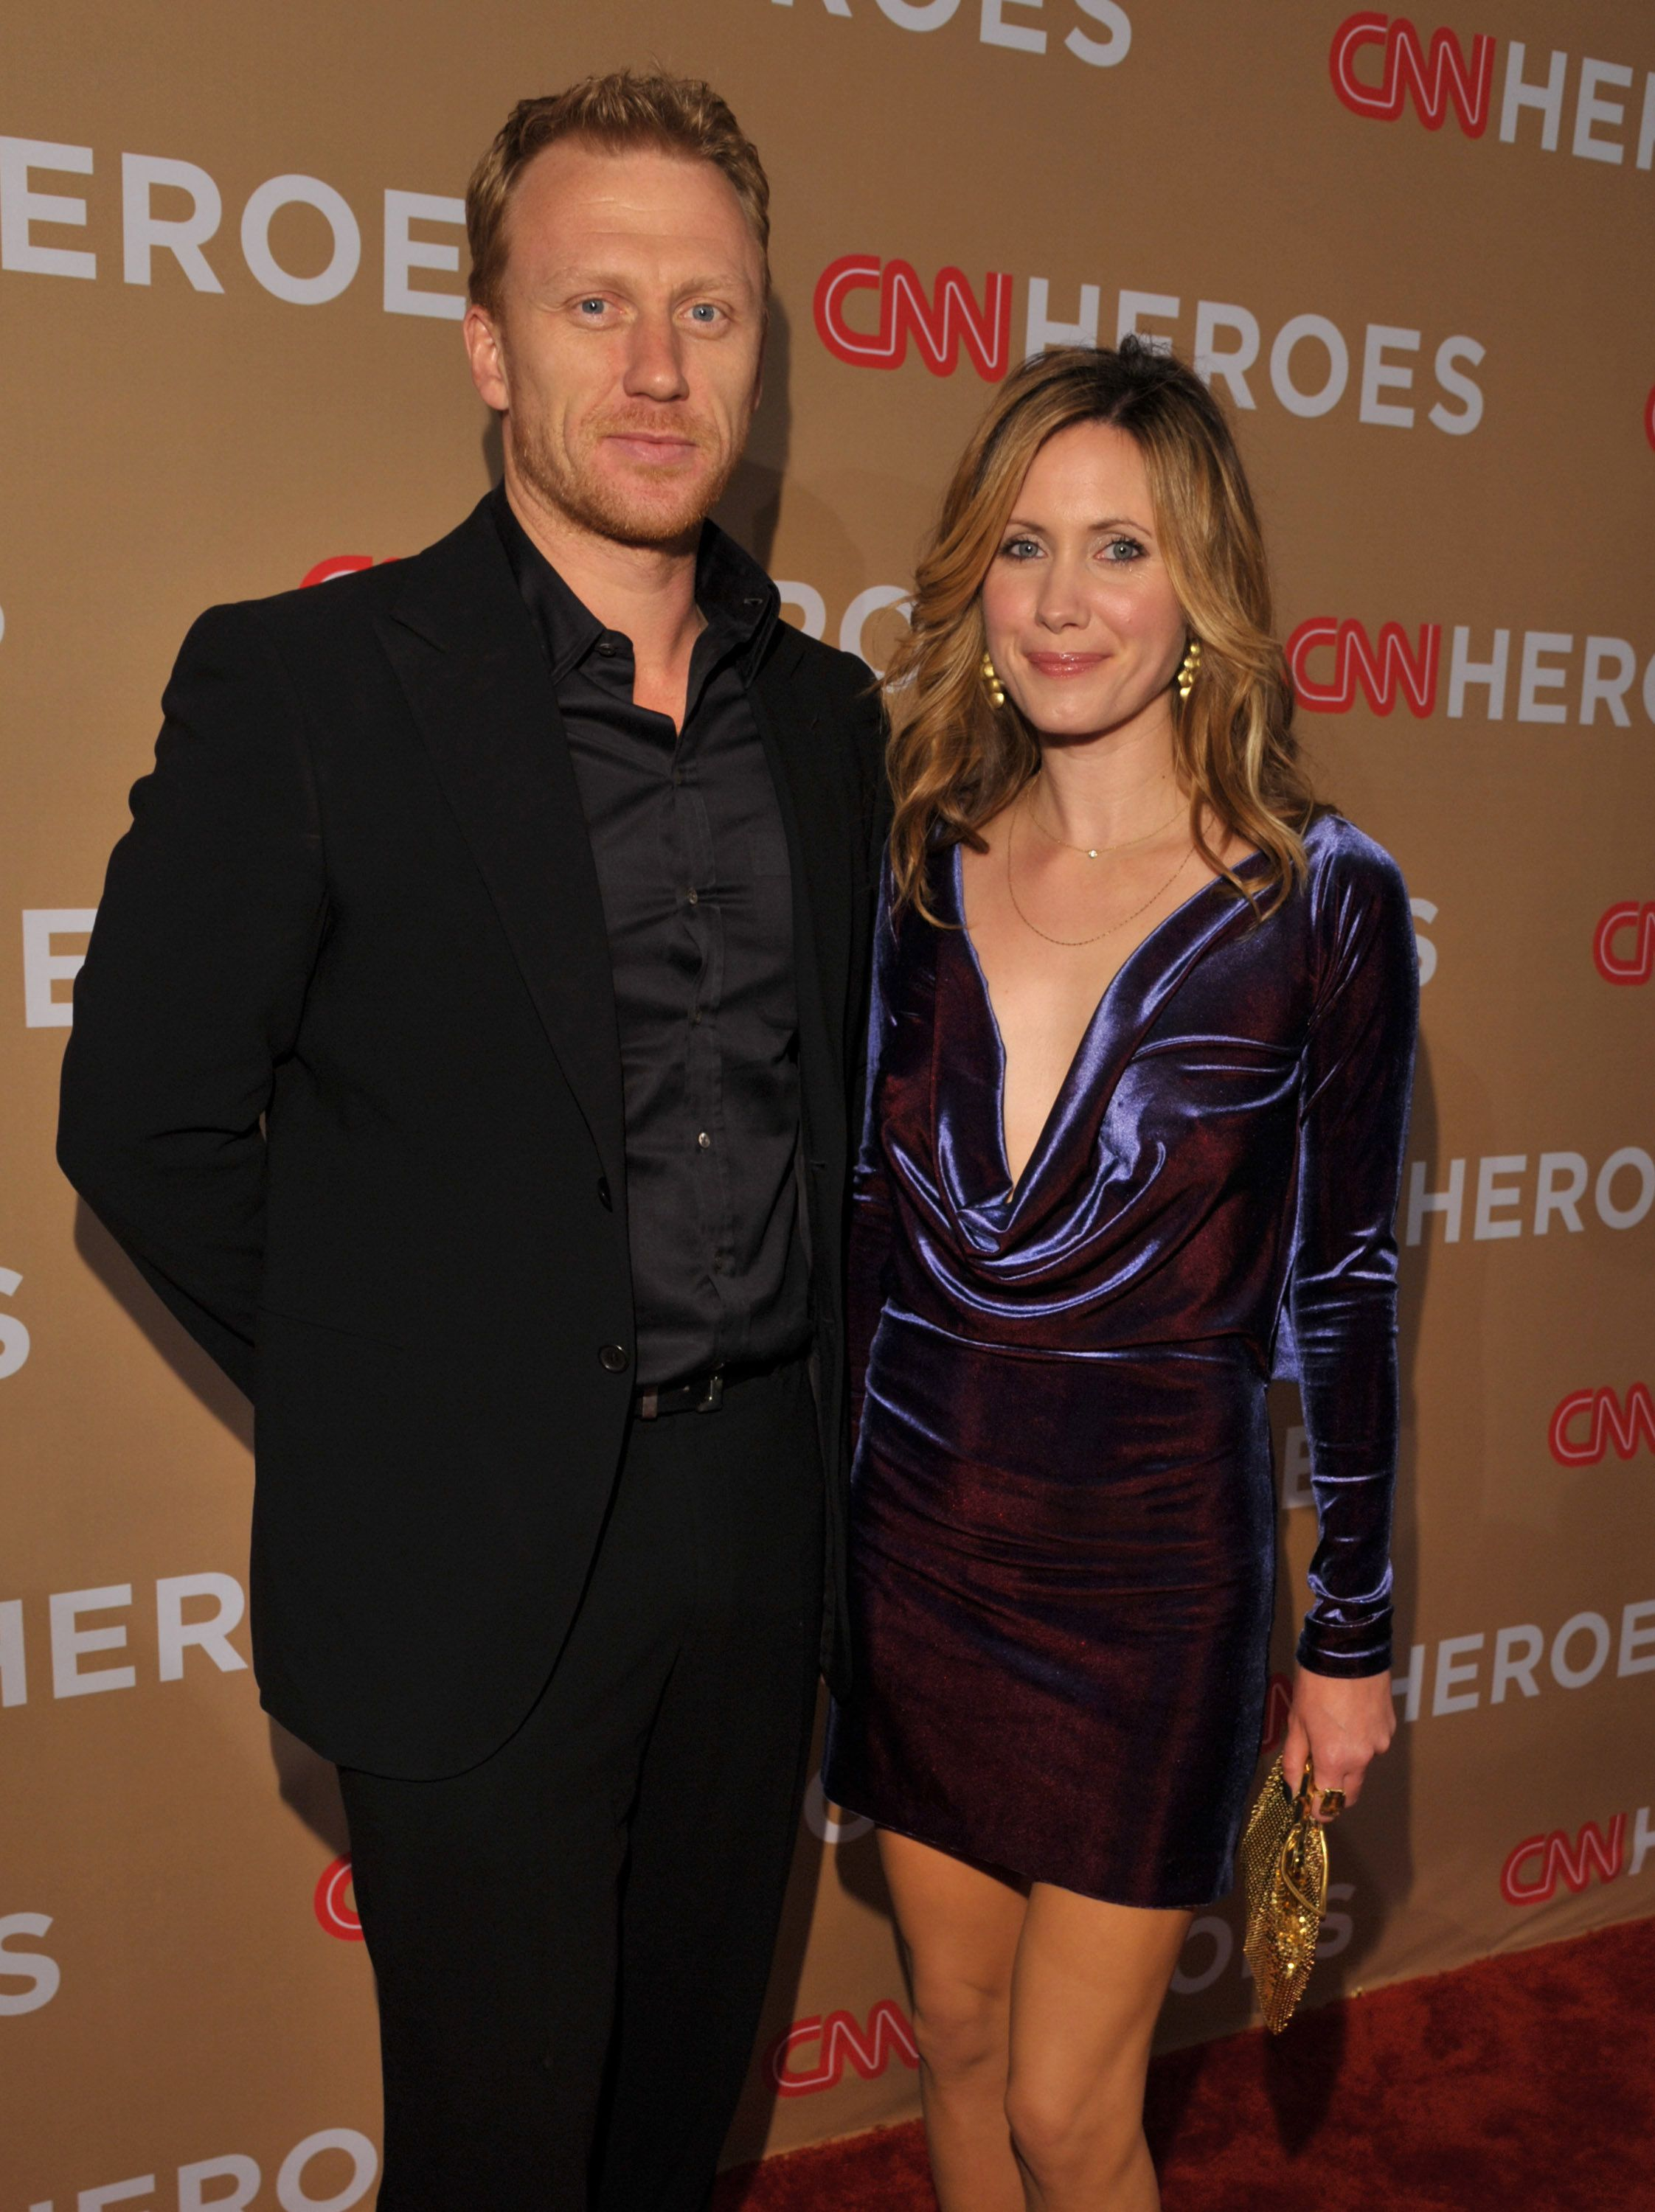 Actor Kevin McKidd and Jane Parker arrive at the 2010 CNN Heroes: An All-Star Tribute held at The Shrine Auditorium on November 19, 2010 in Los Angeles, California. 20711_006_LC_0303.JPG